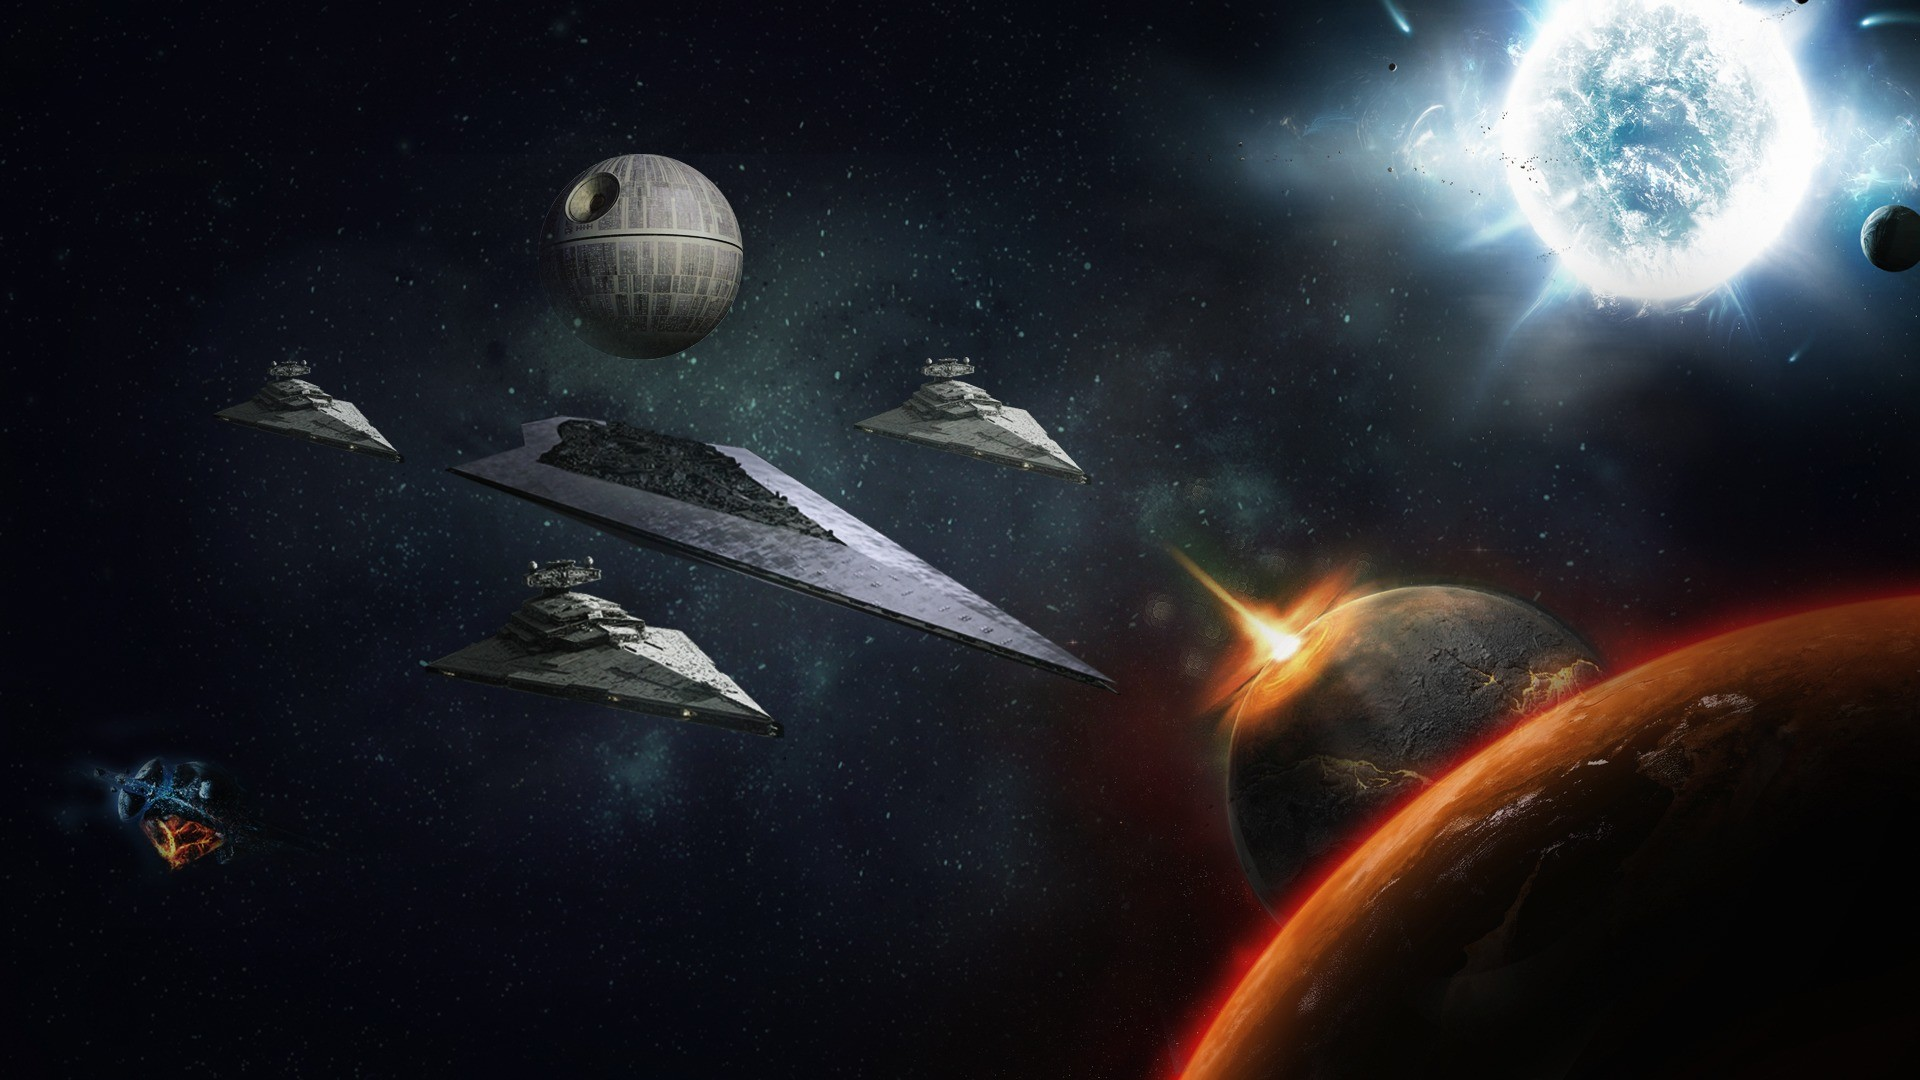 Star - Star Wars Planets Background , HD Wallpaper & Backgrounds